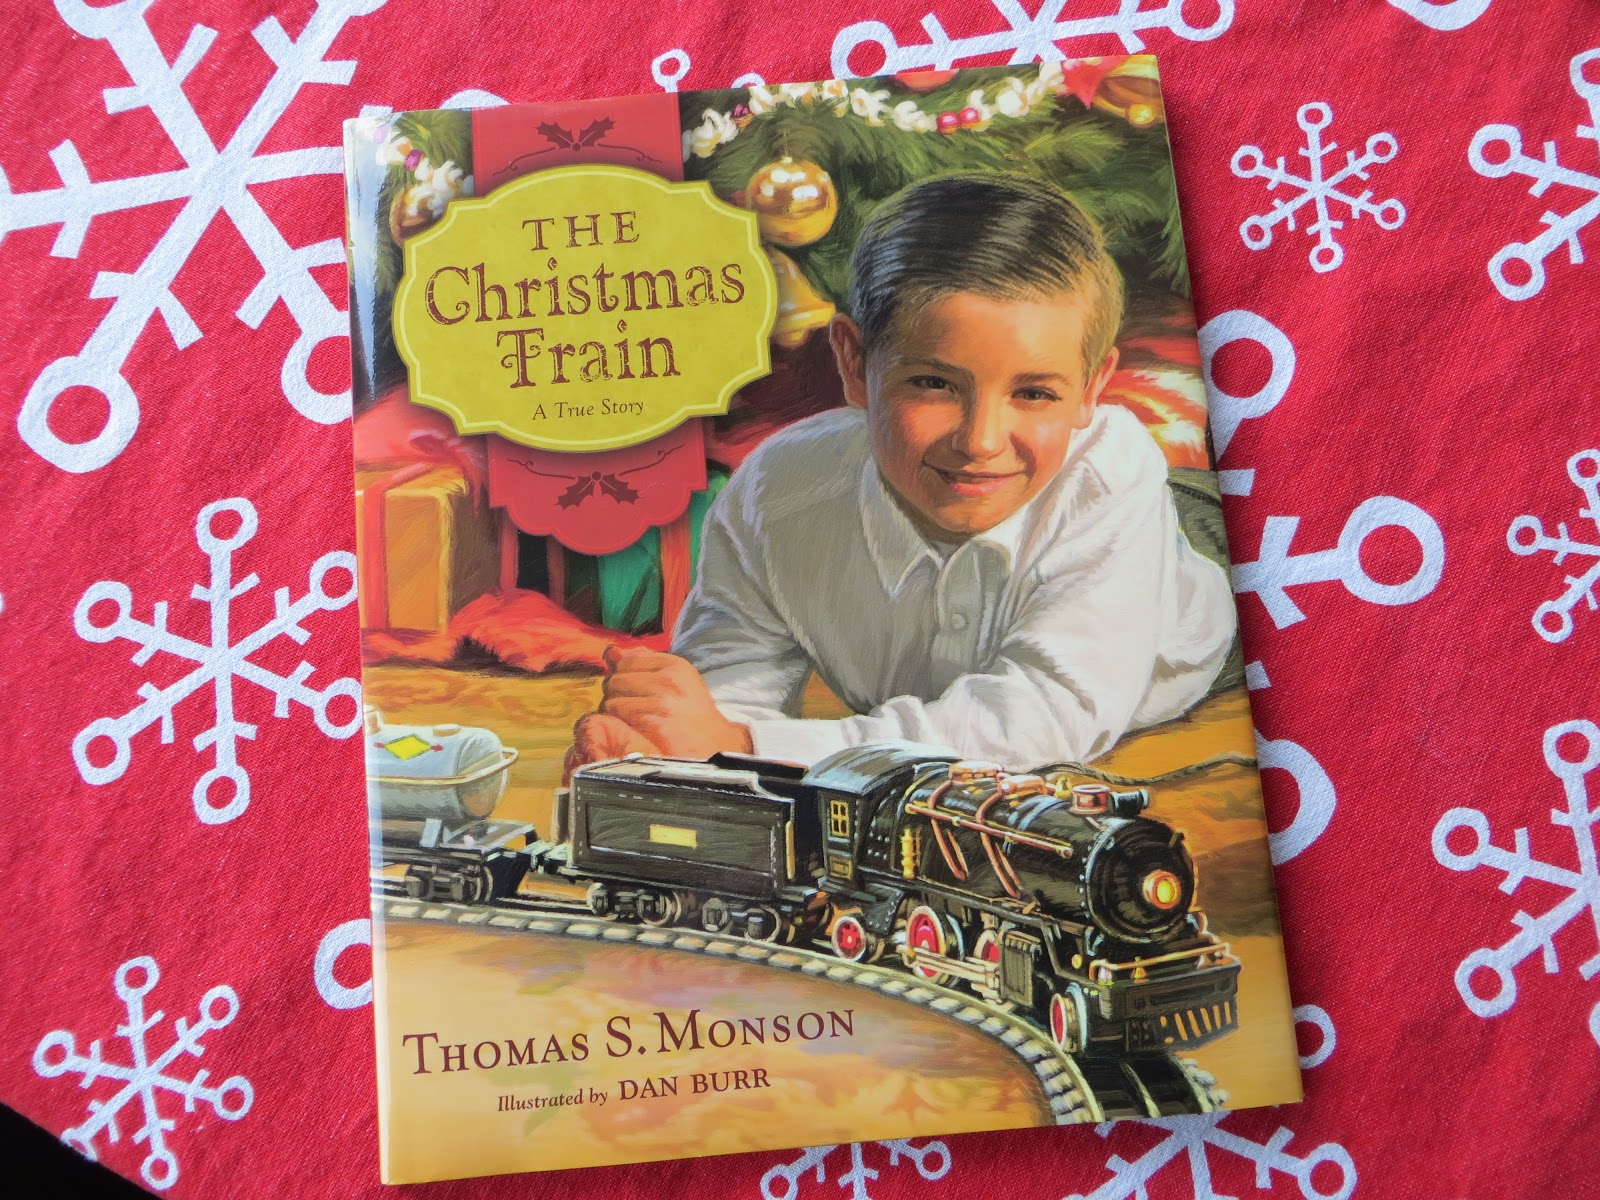 This Is One Of The New Books We Got This Year The Christmas Train A True Story By Thomas S Monson When I First Saw This Advertised I Knew I Had To